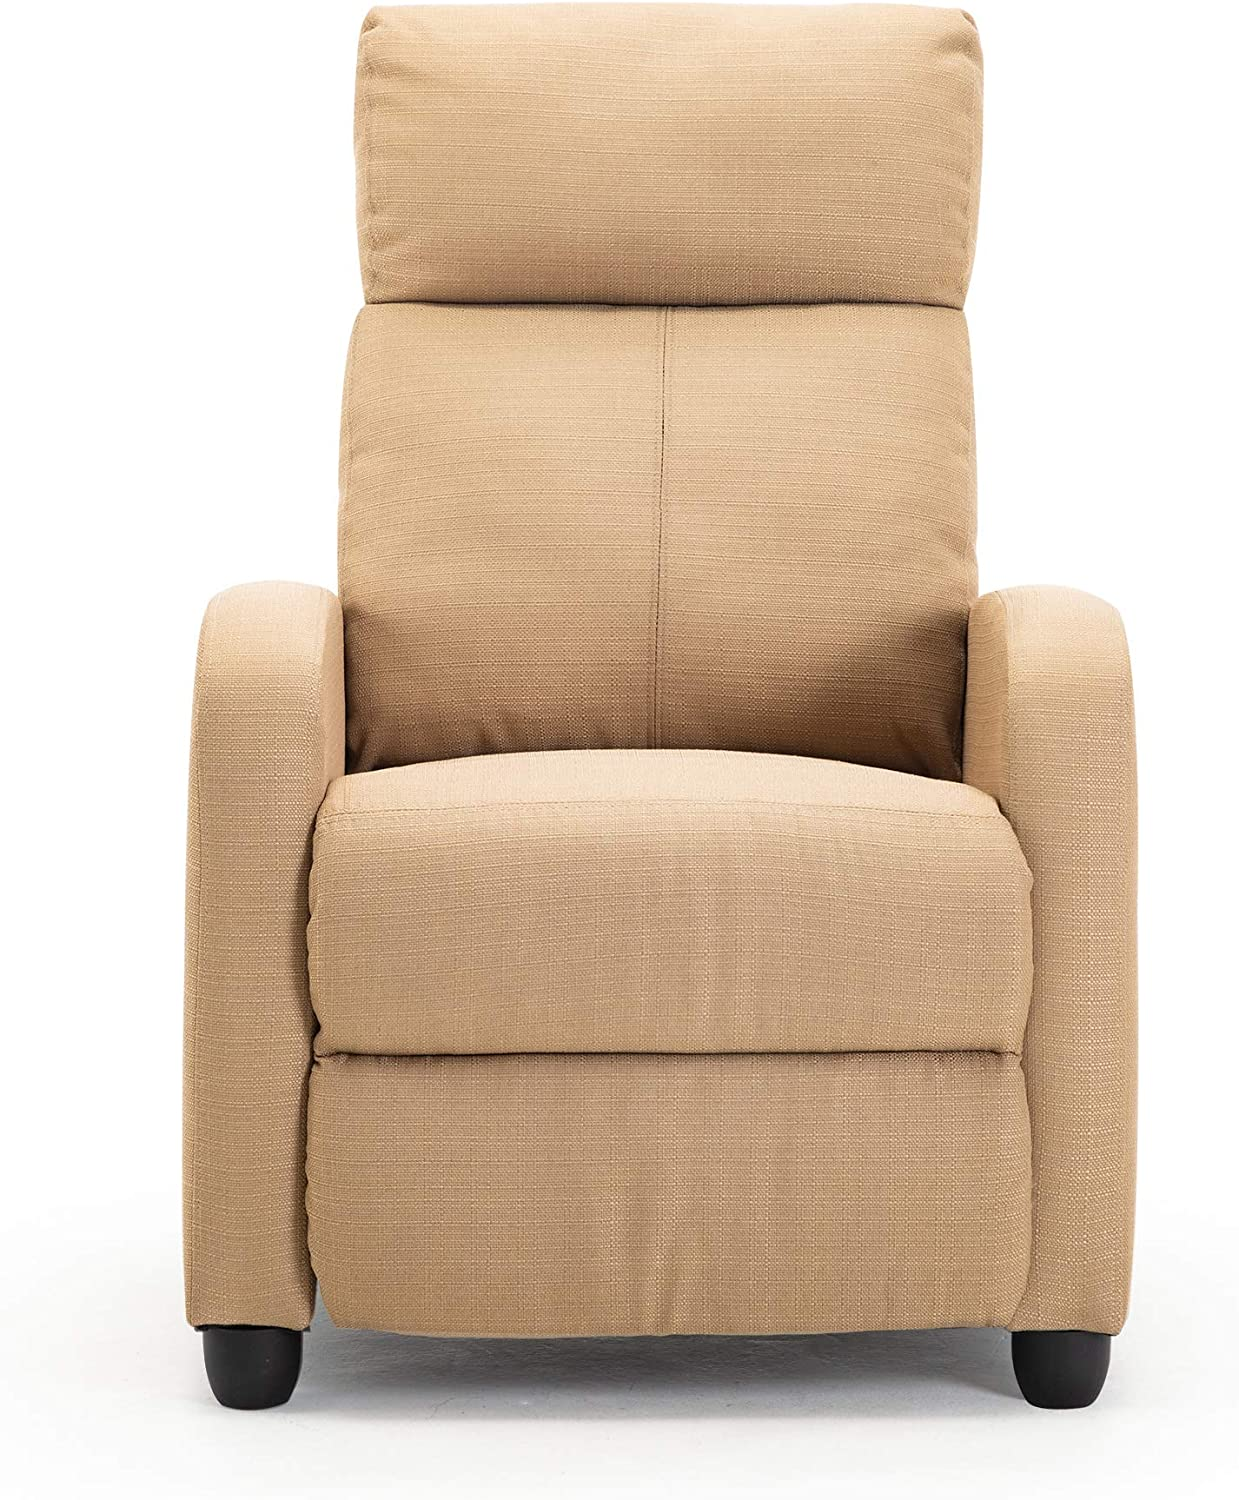 Recliner Chair for Living Room,Modern Fabric Sofa Home Theater Seating Lounge Chair(Beige)